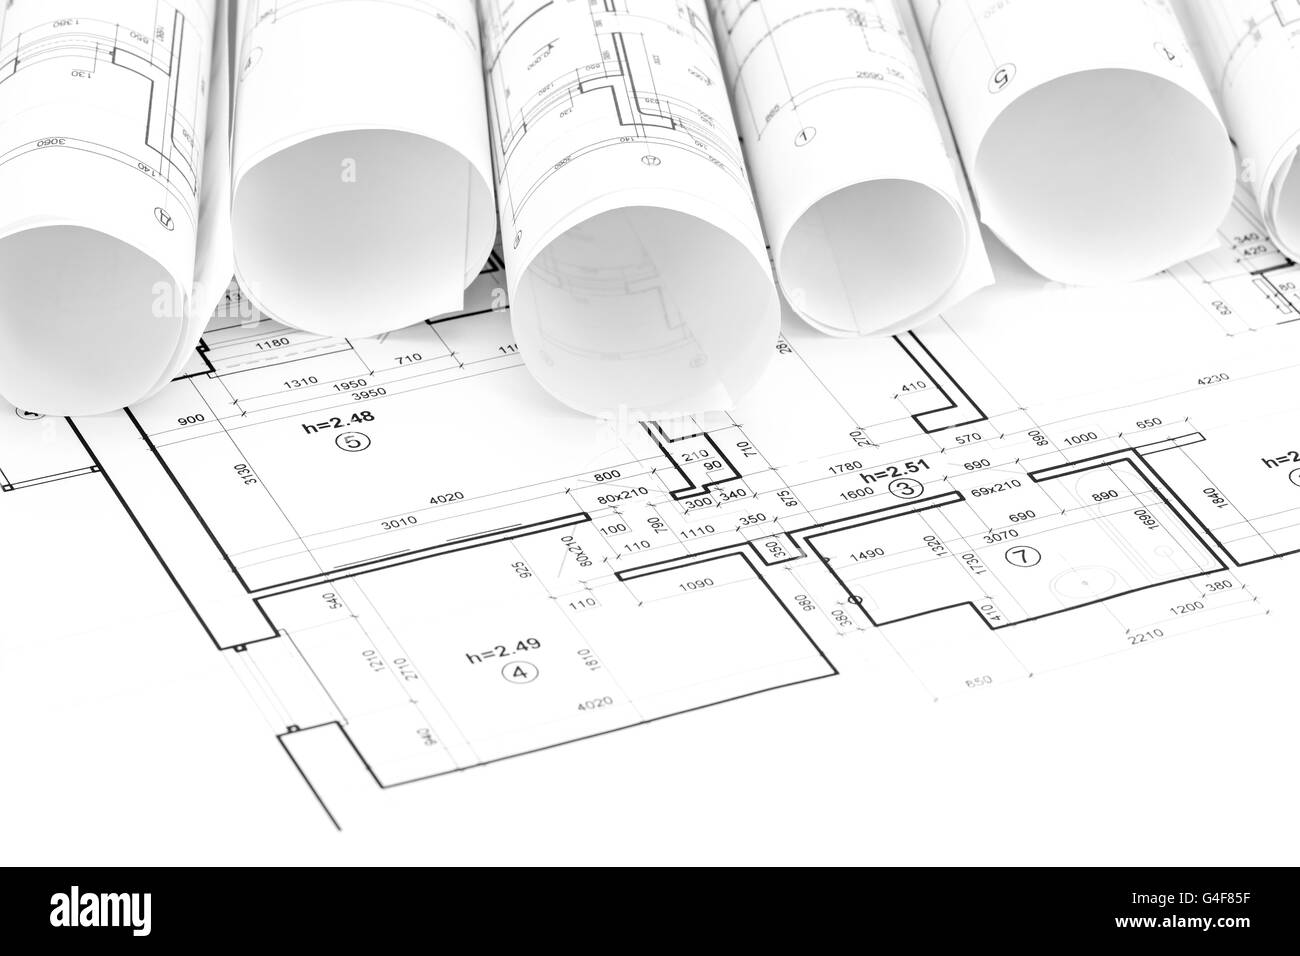 Architectural blueprint rolls and floor plans on desk stock photo architectural blueprint rolls and floor plans on desk malvernweather Choice Image